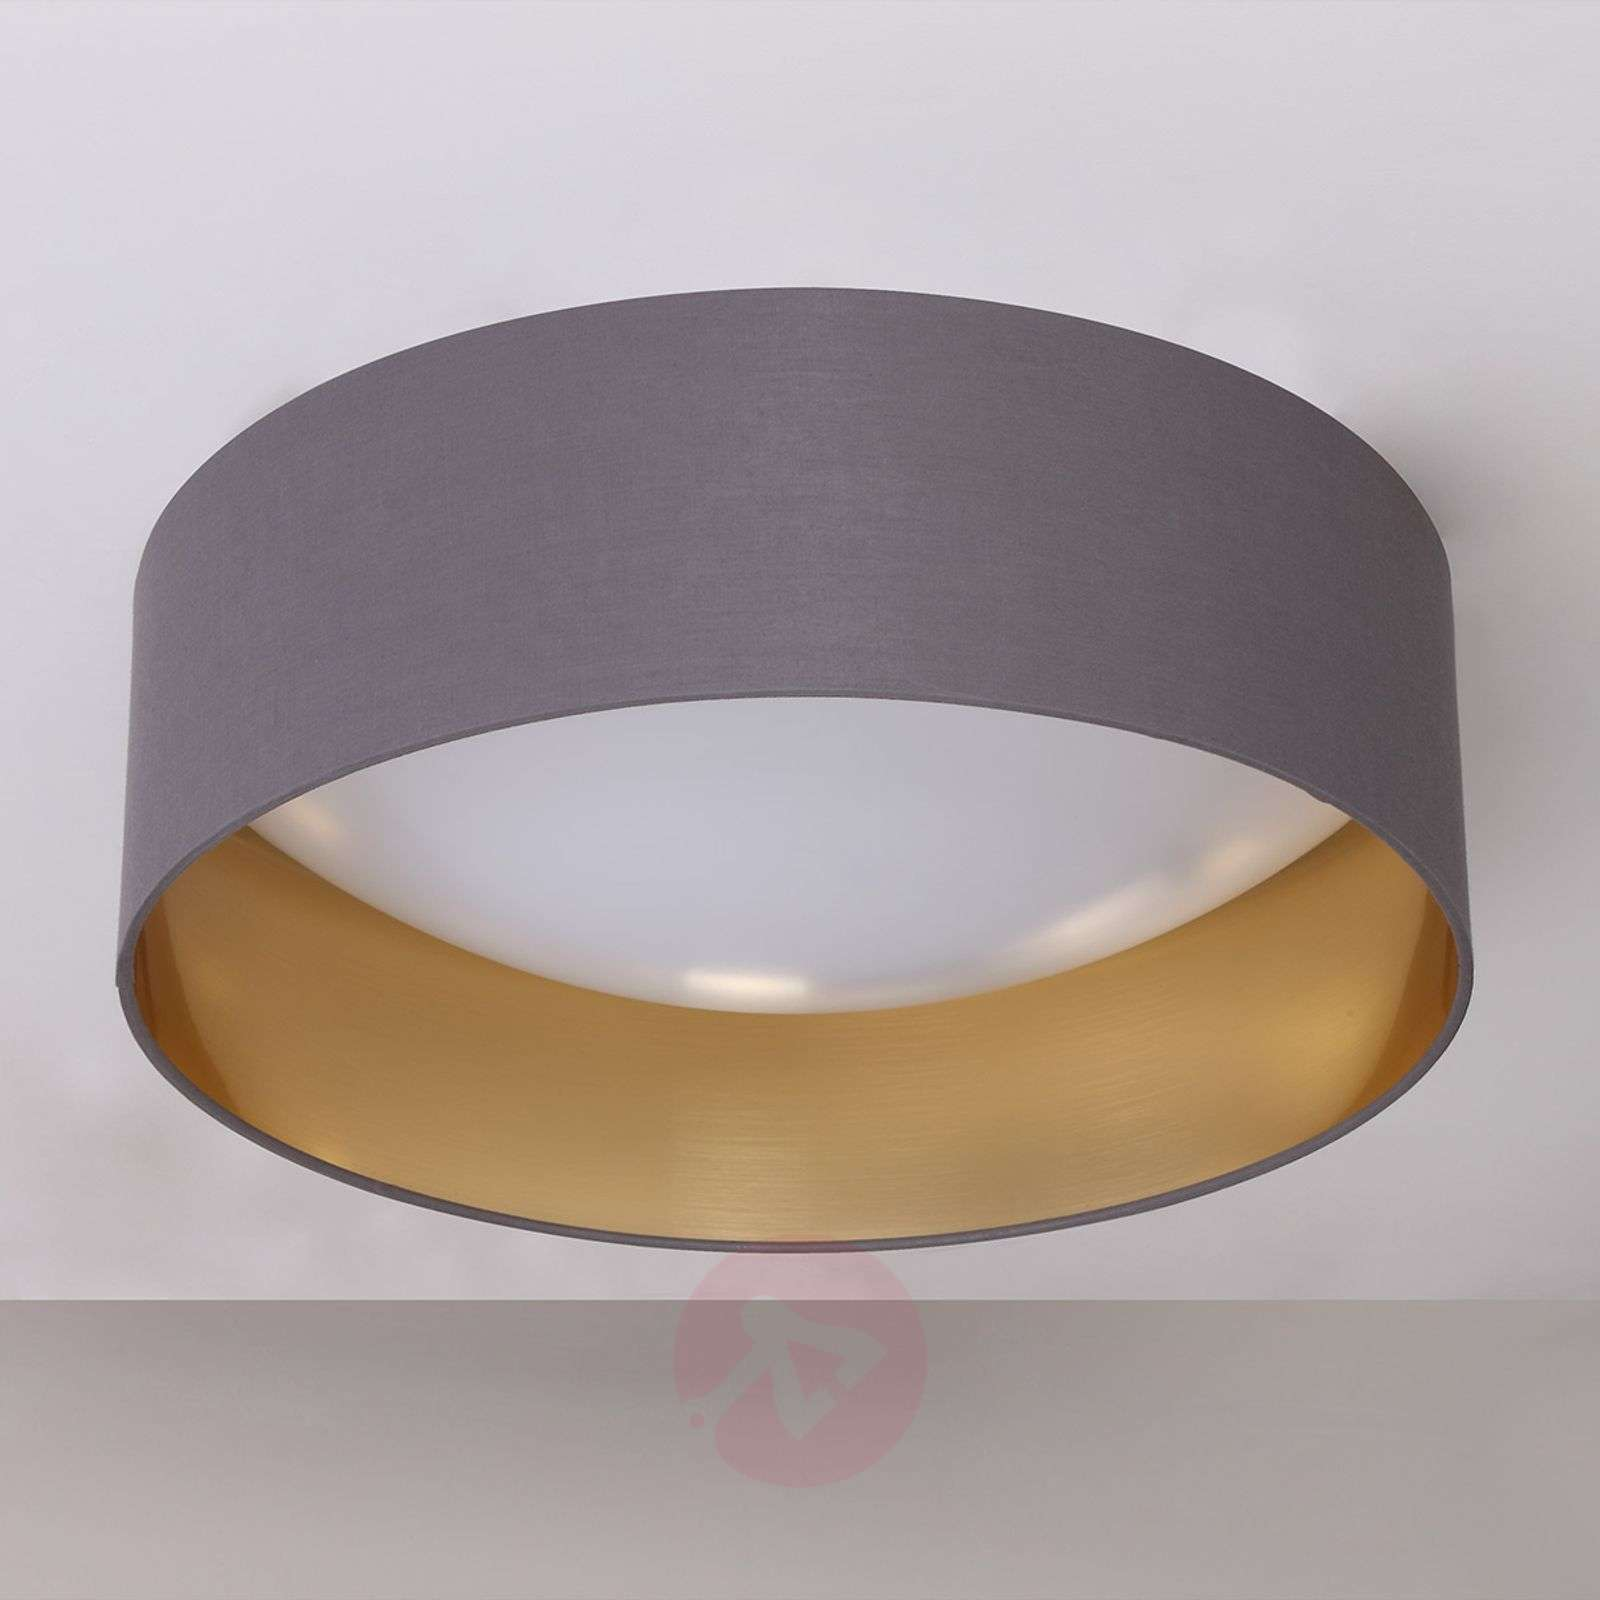 fabric ceiling light coleen in grey gold inside